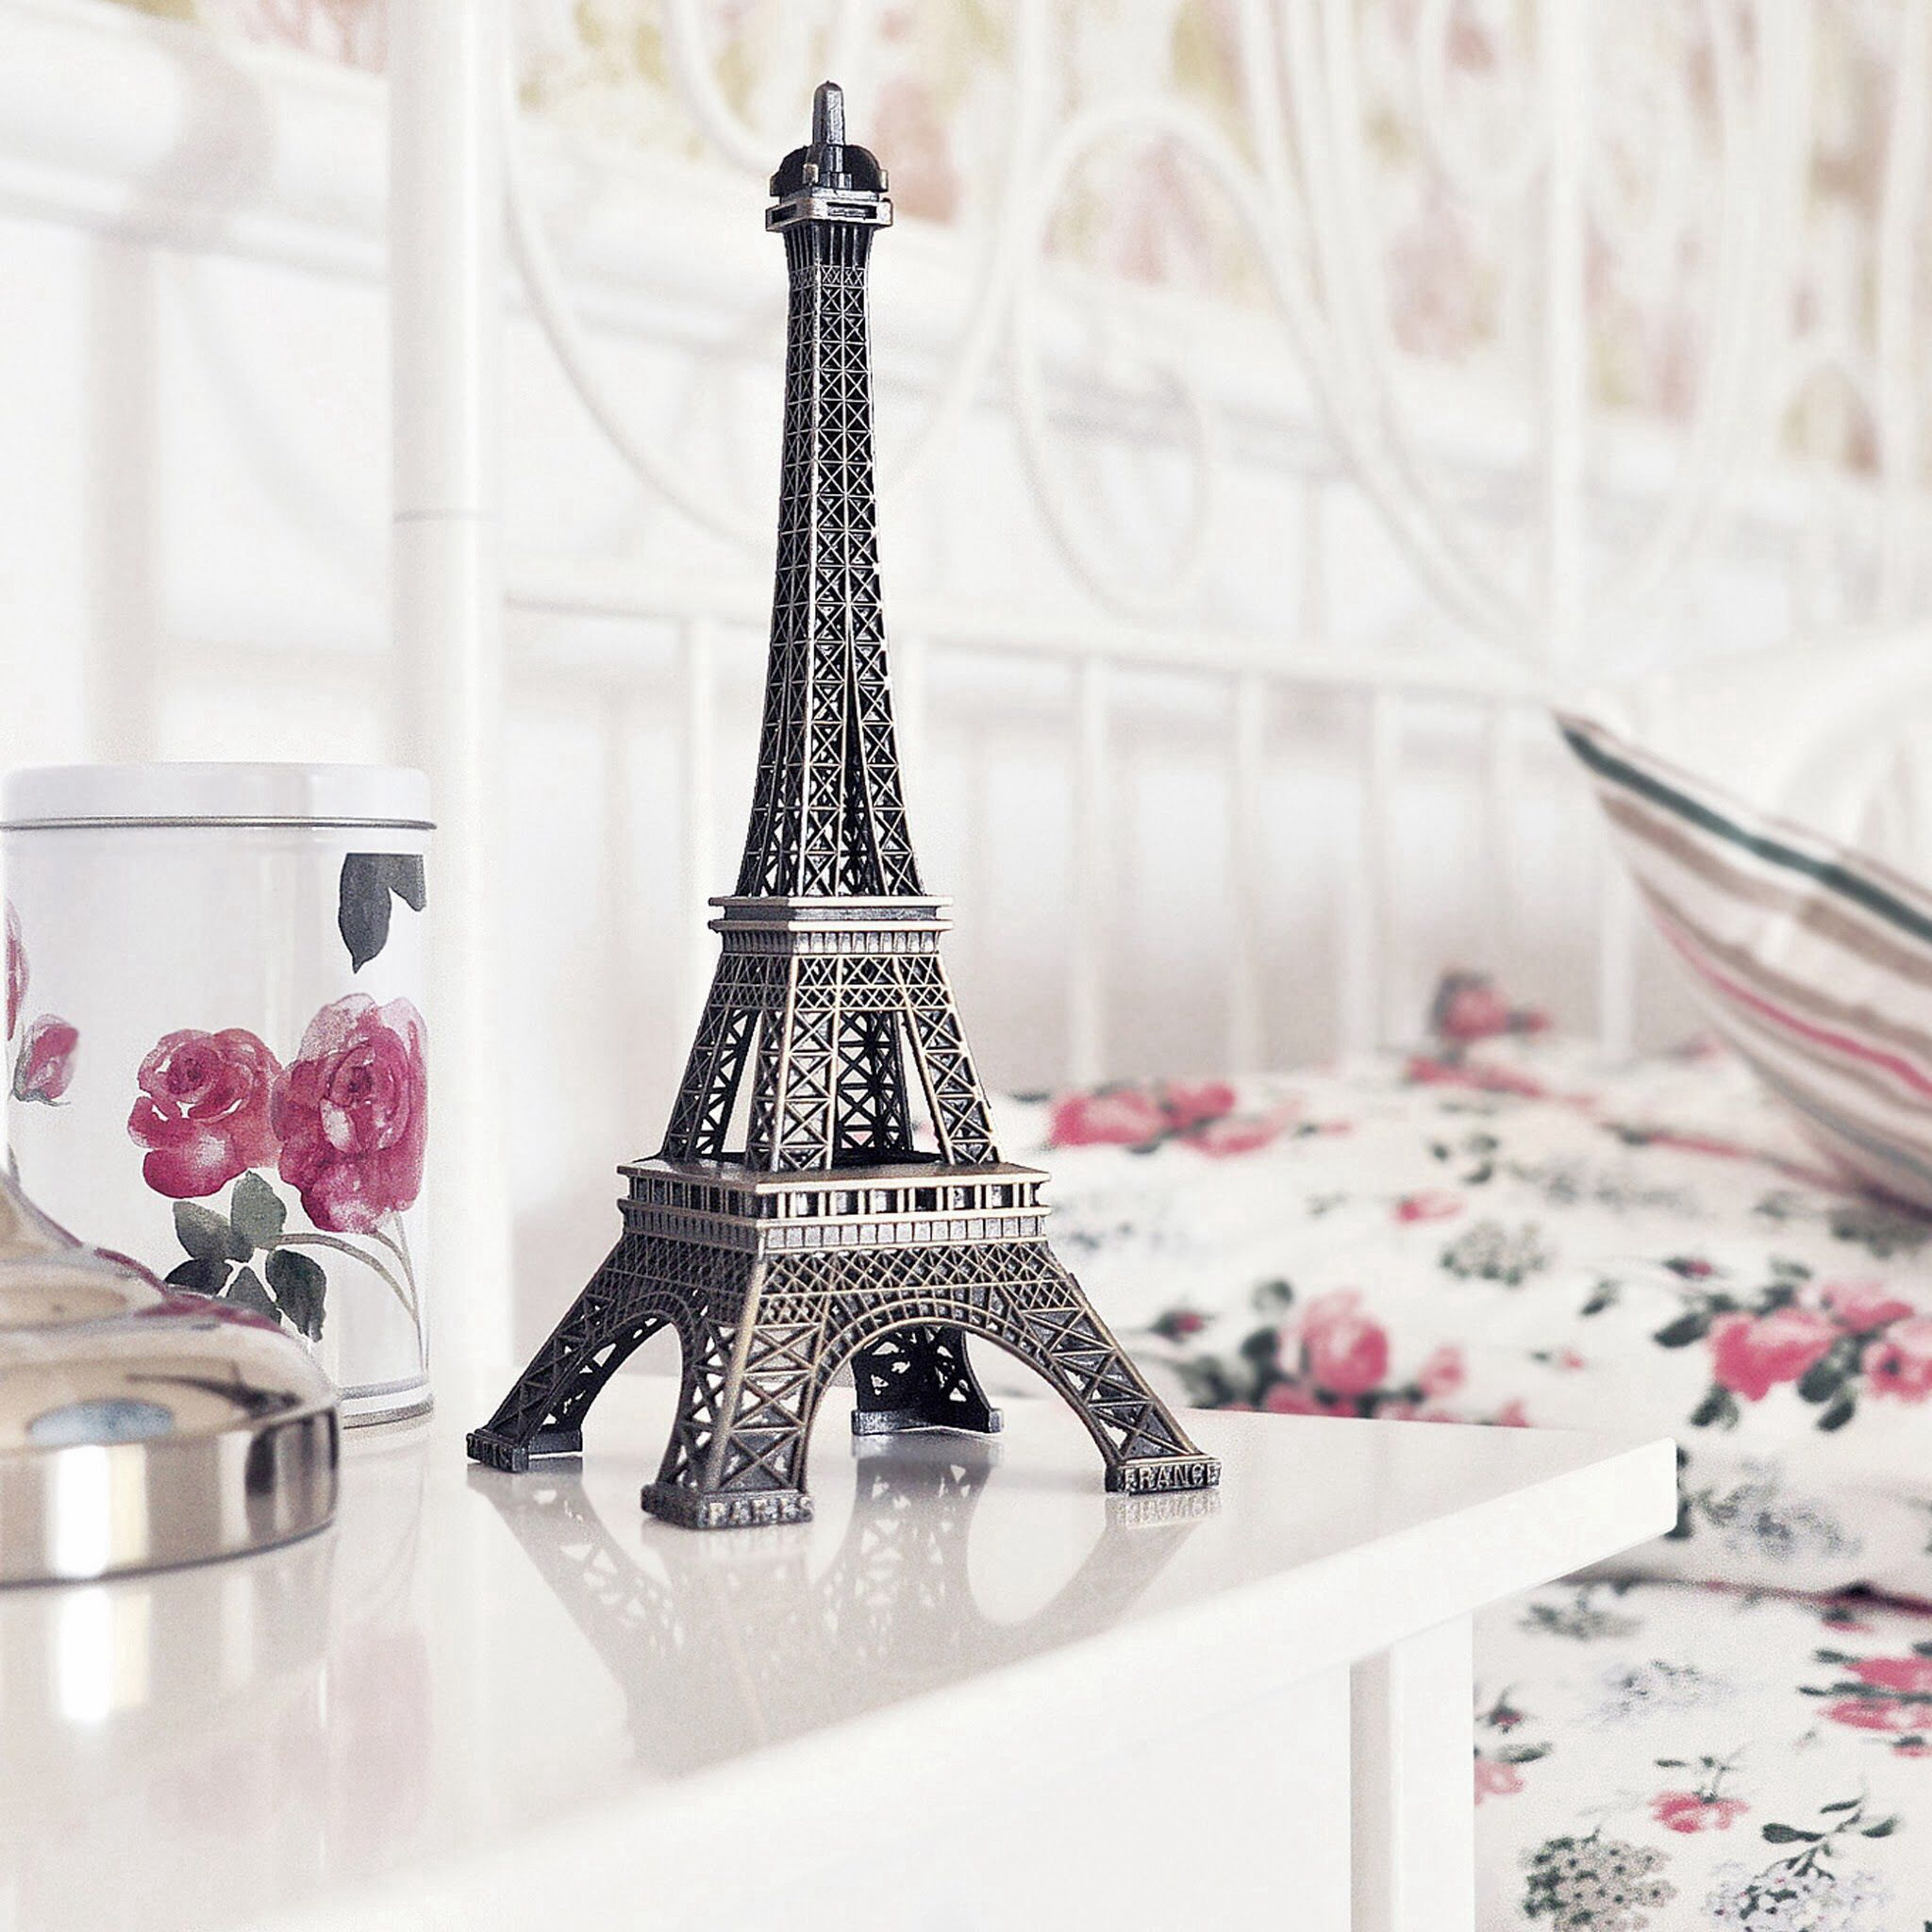 Paris Bedroom Wallpaper Im So Sad This Used To Be My Room Wallpaper When I Was A Kid